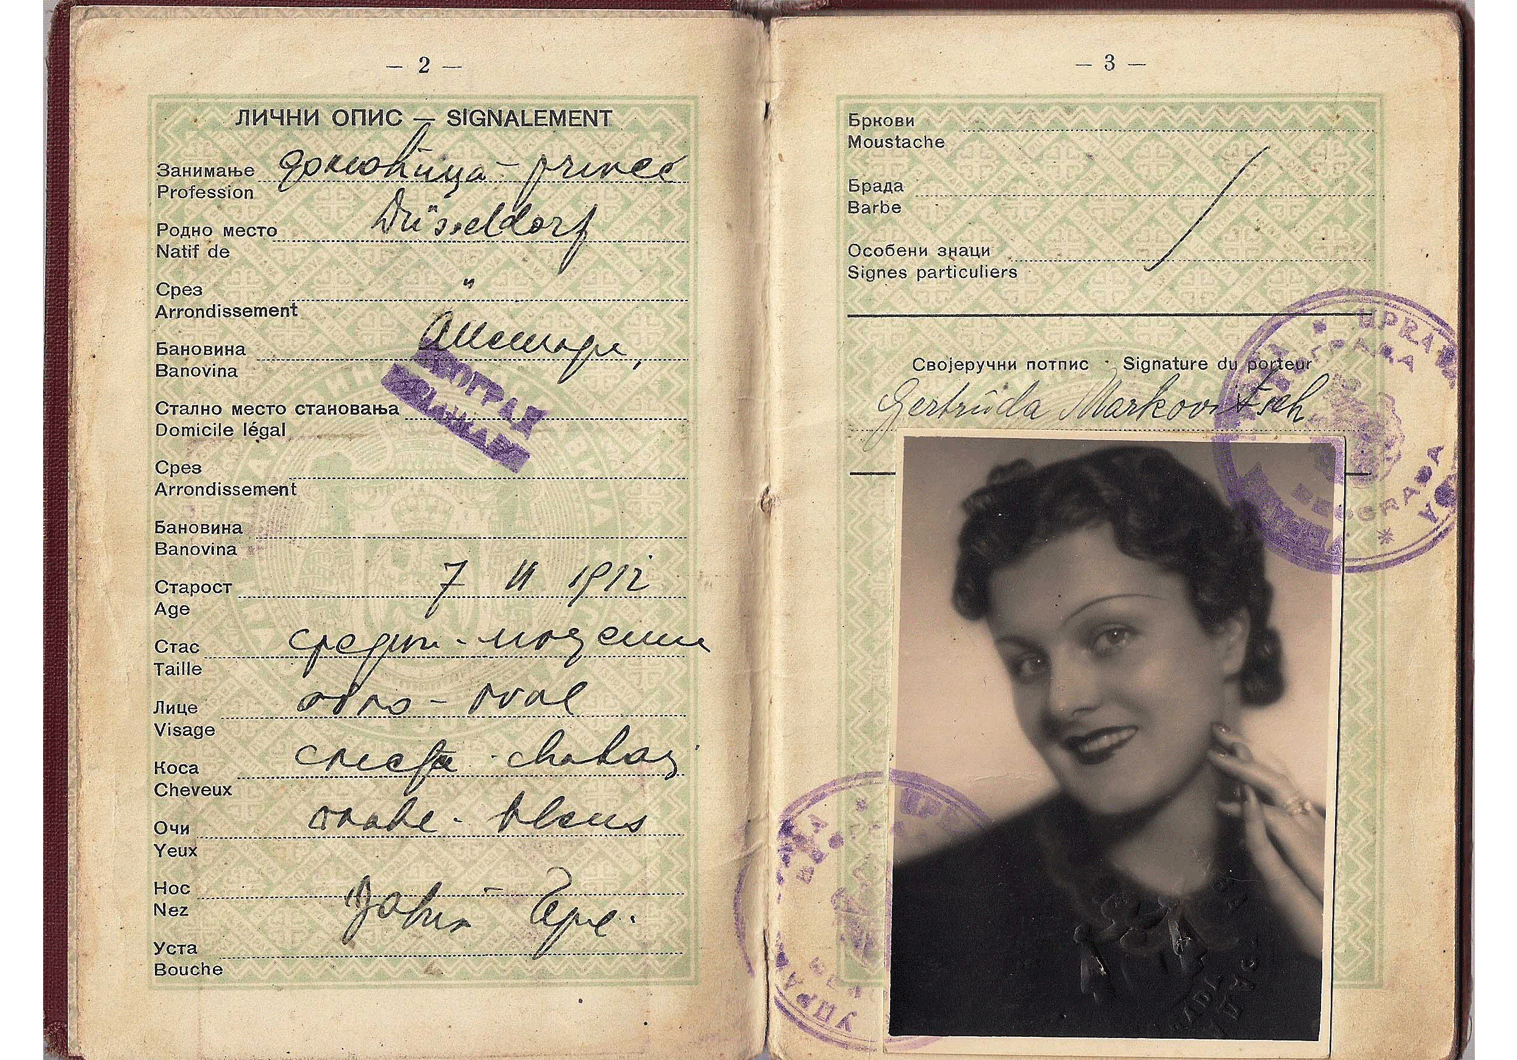 1944 Budapest - life saving passport extension